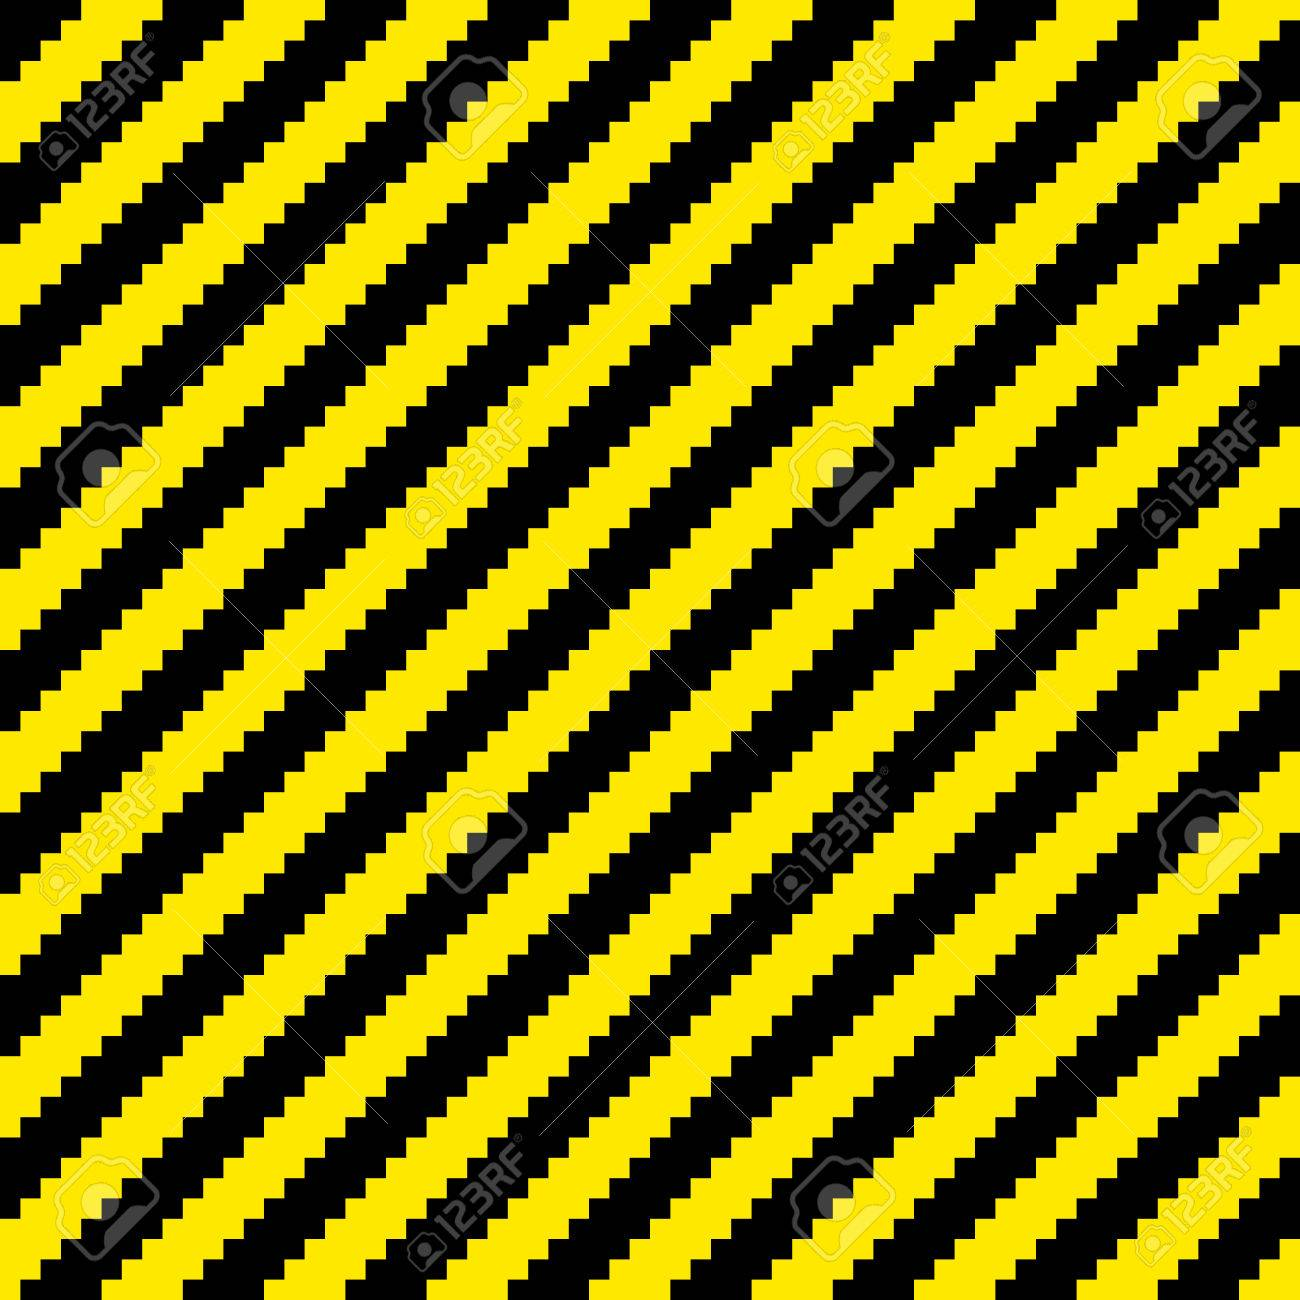 Black and yellow diagonal warning stripes done in a pixel-art style. Seamless background tile. Each